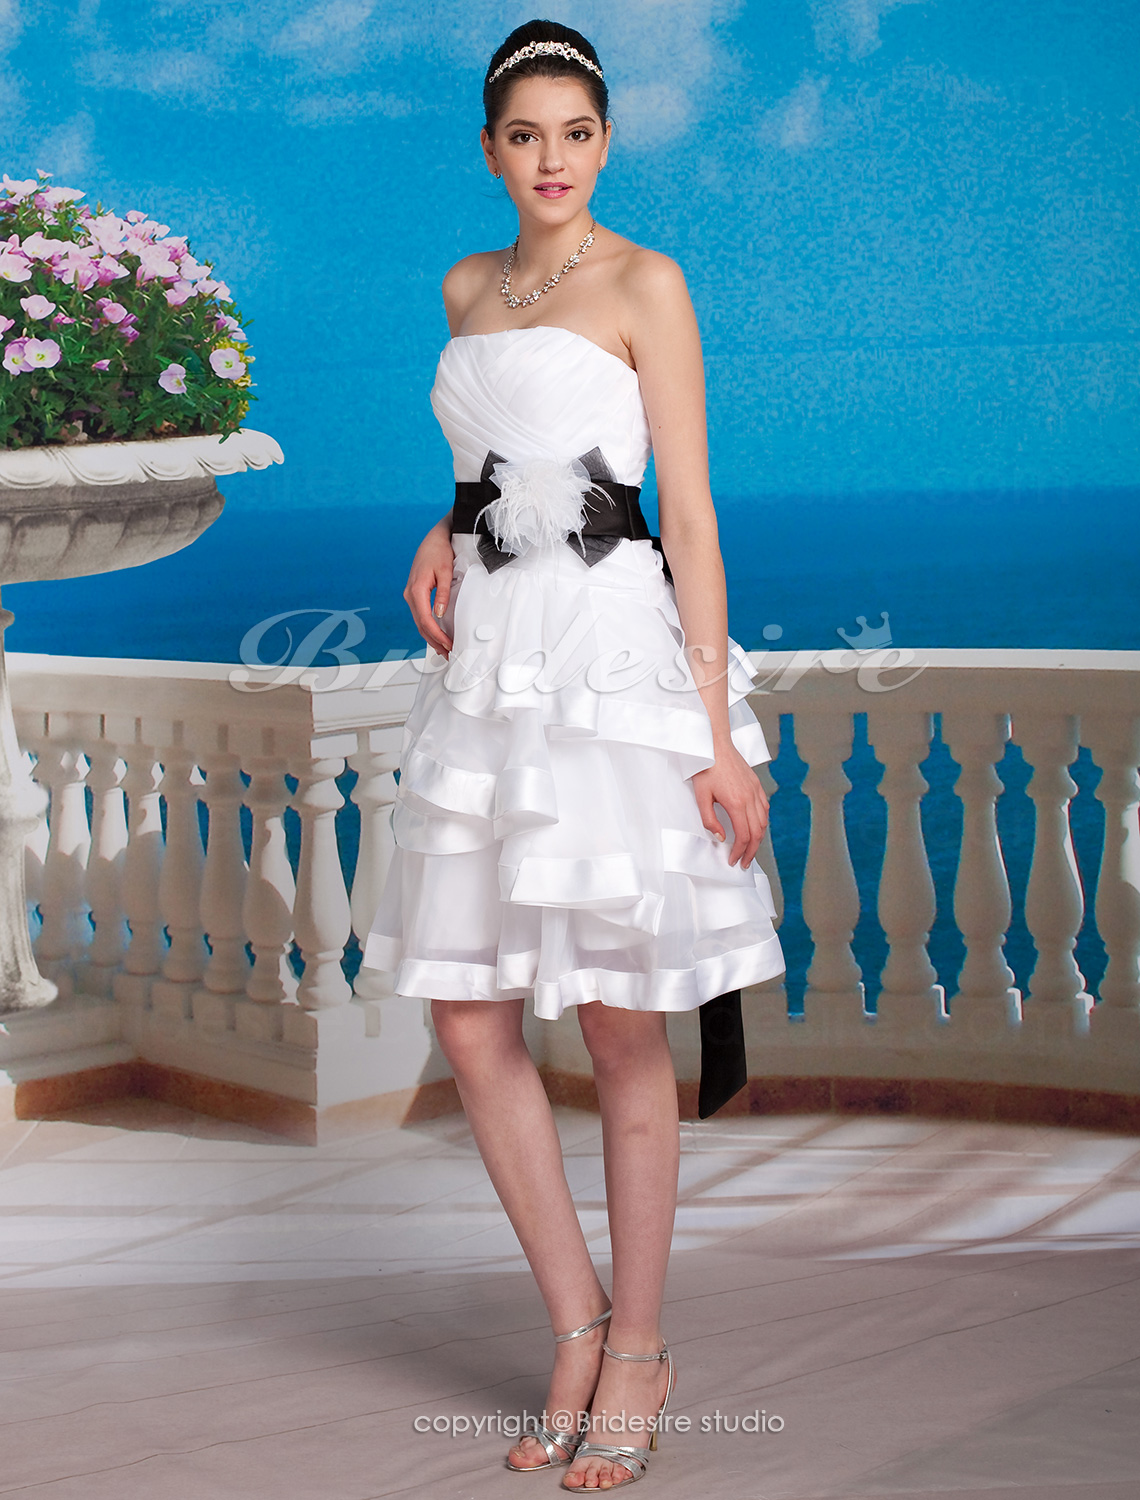 A-line Satin And Organza Short/Mini Sweetheart Wedding Dress With Removable belt